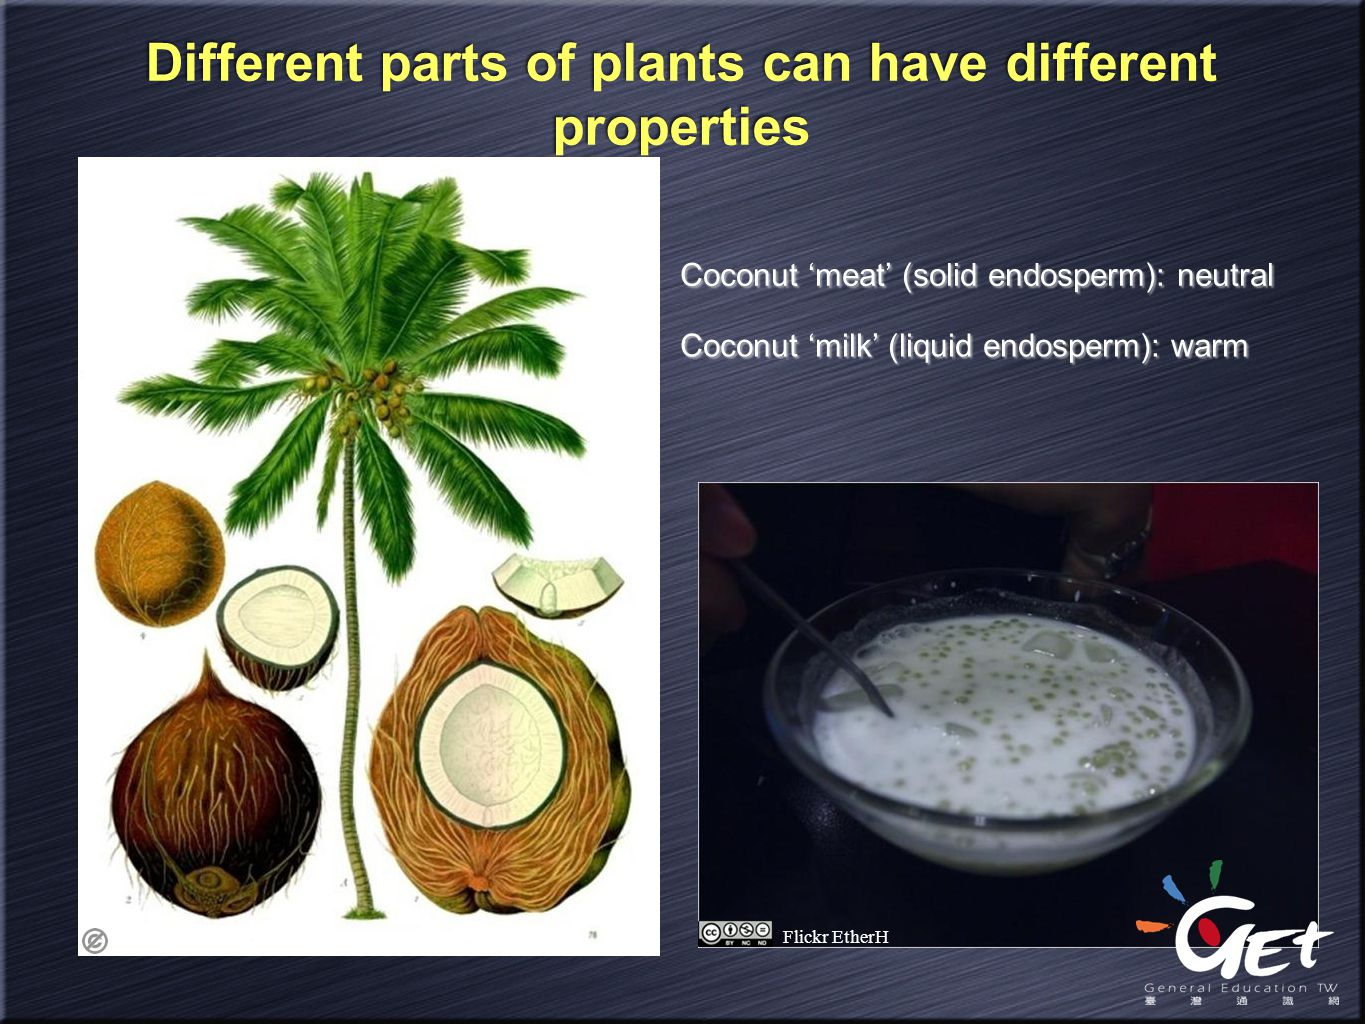 Different parts of plants can have different properties